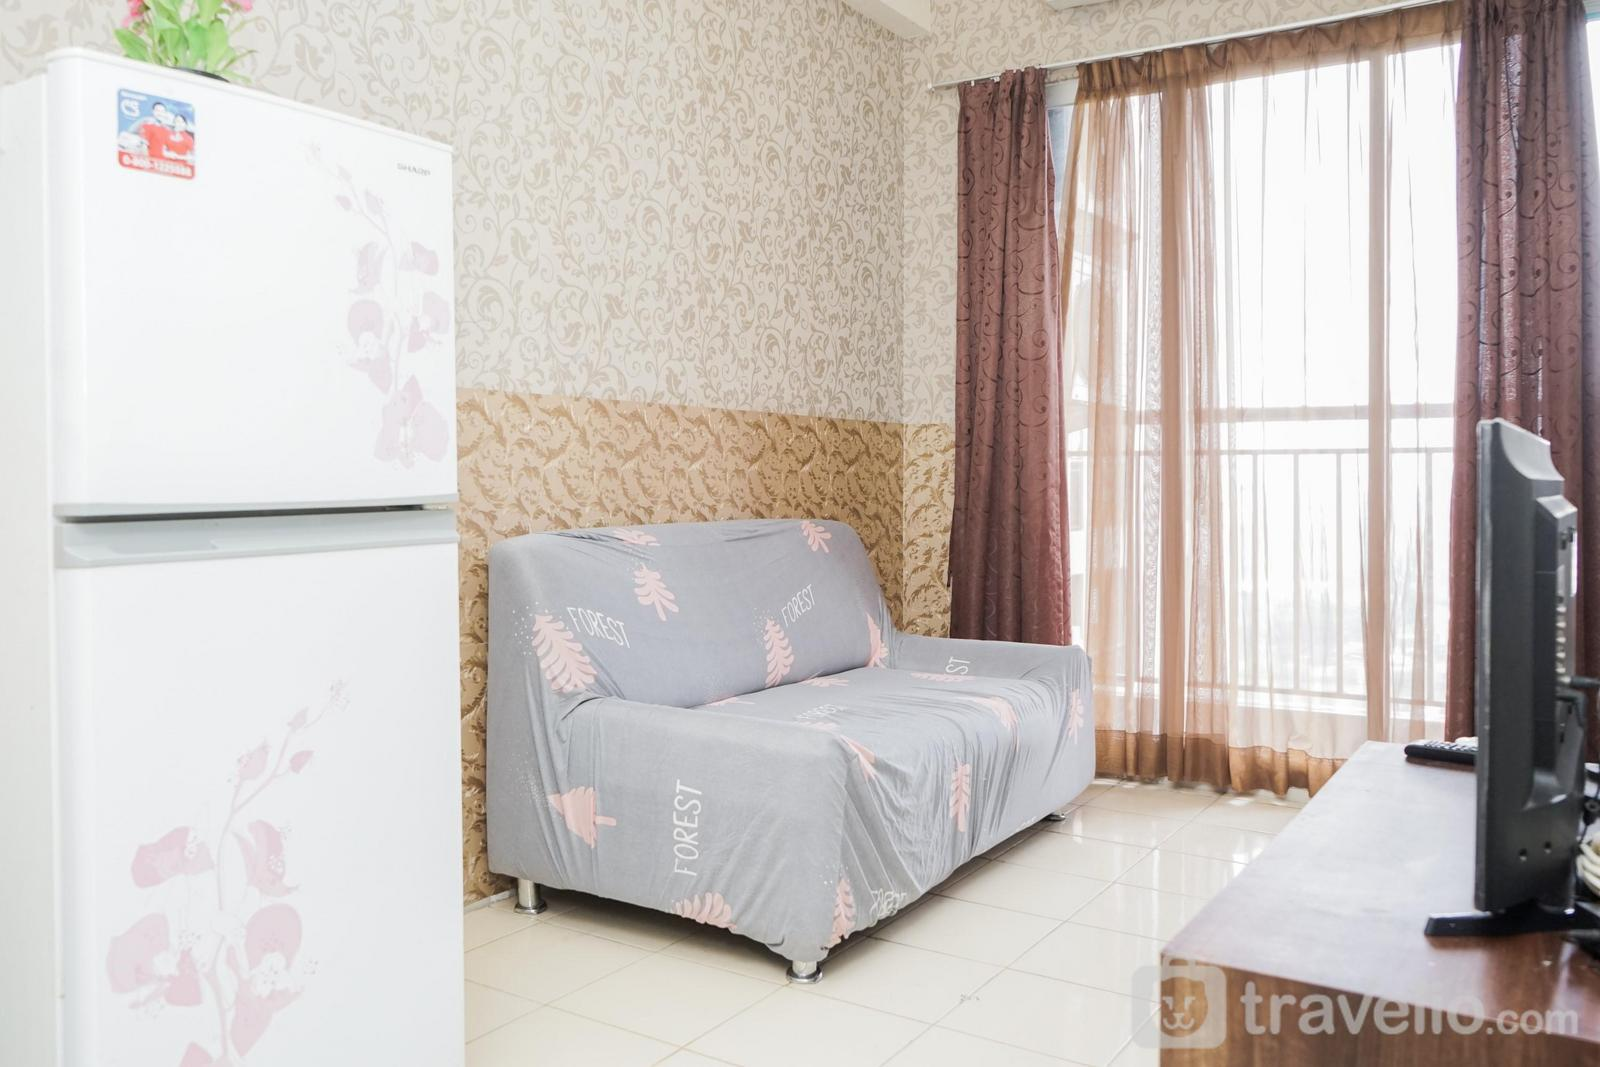 Apartemen Serpong Greenview - Spacious and Nice 2BR Serpong Greenview Apartment By Travelio